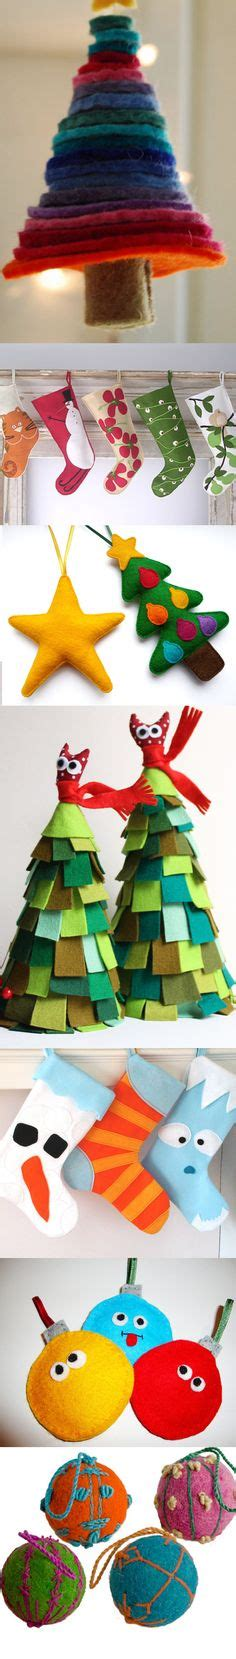 xmas trees stover recipe for stover rosebud mints search projects to try